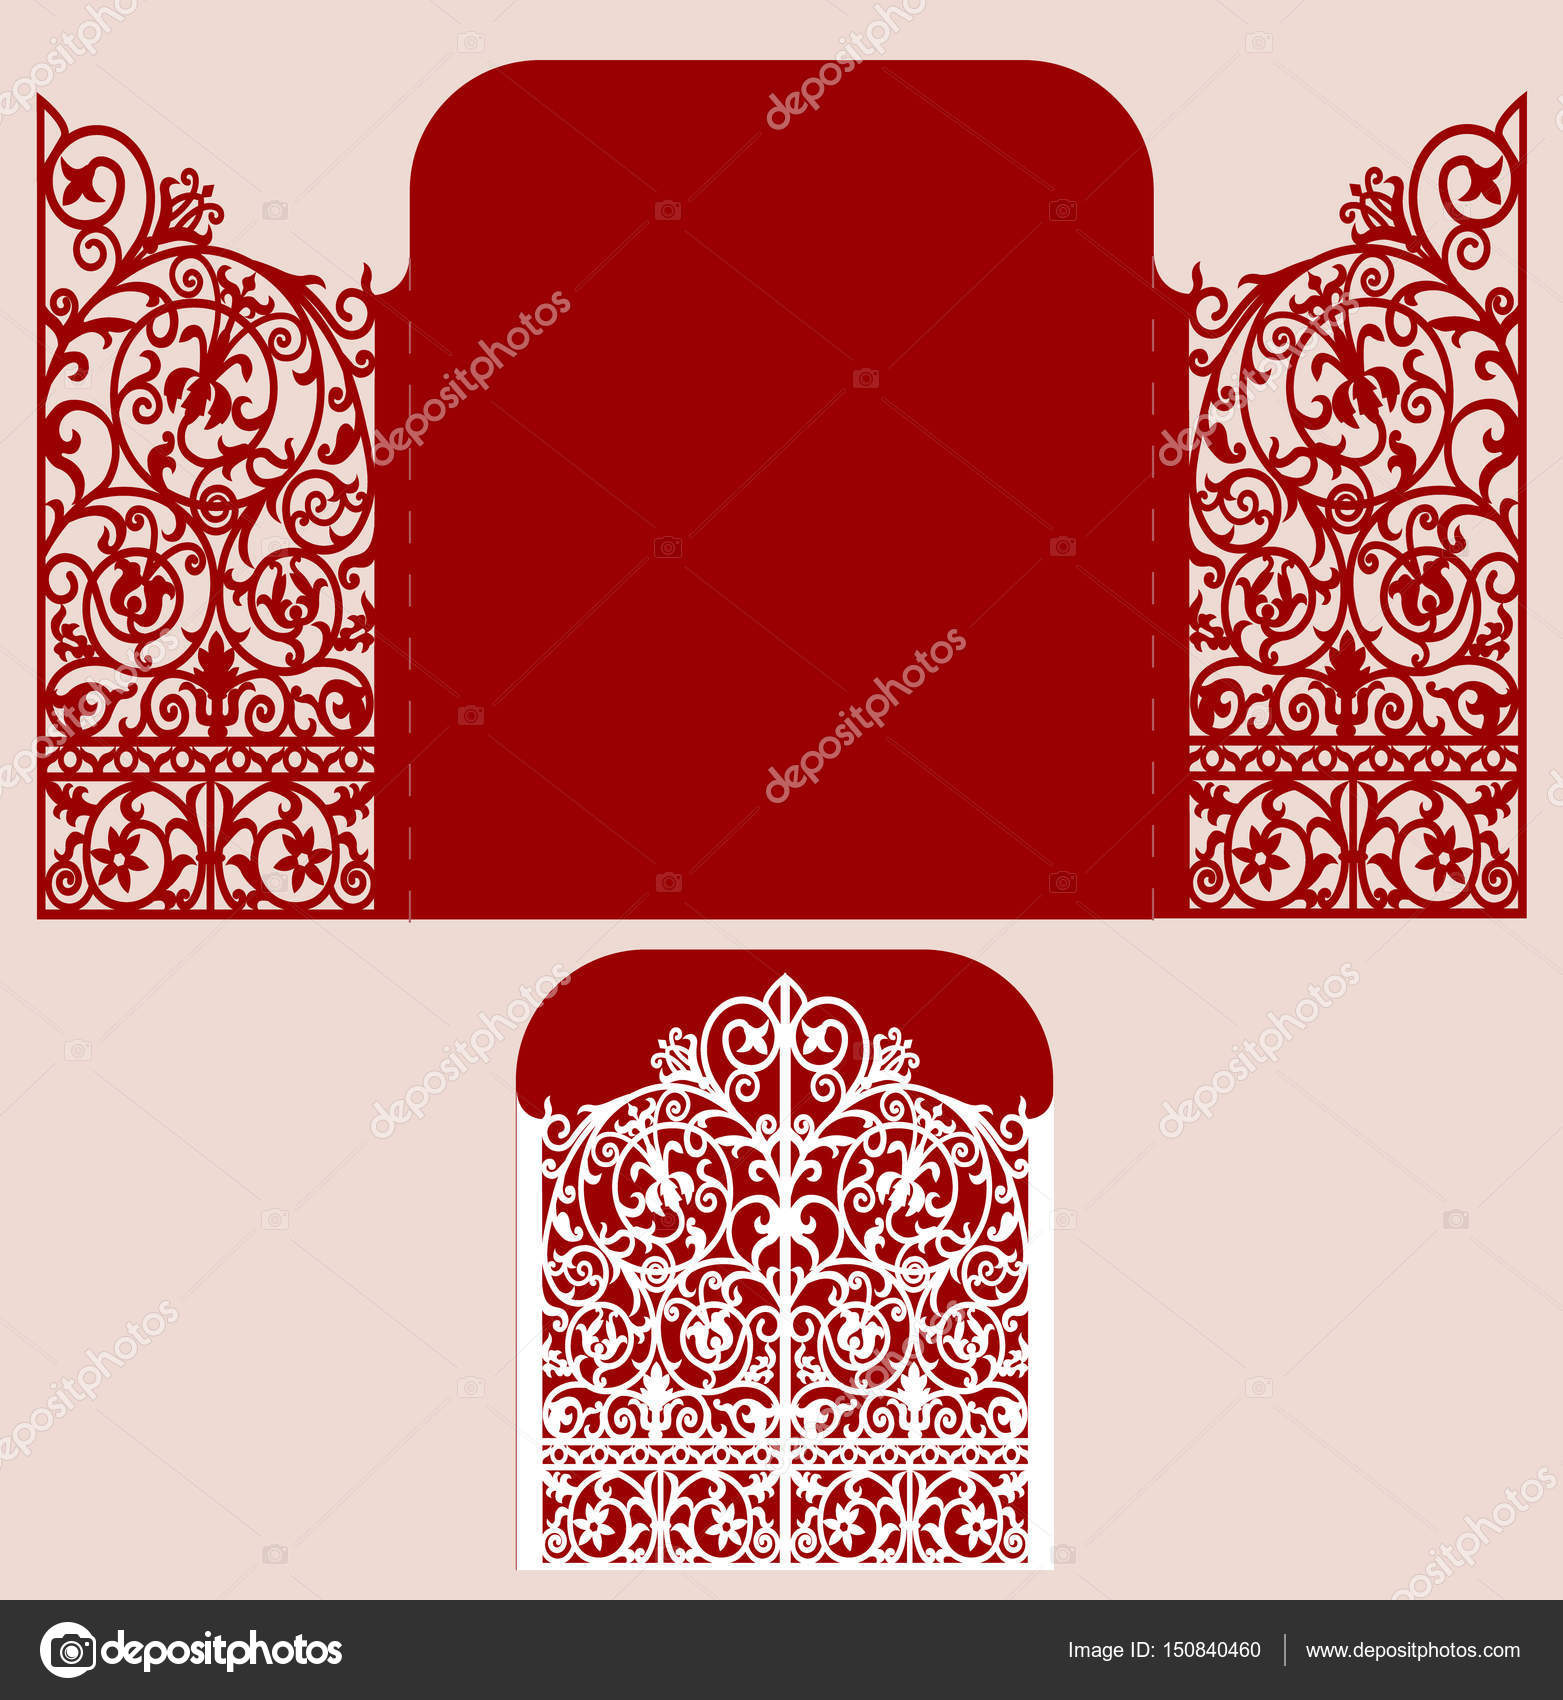 laser cut wedding invitation — Stock Vector © tatiana54 #150840460